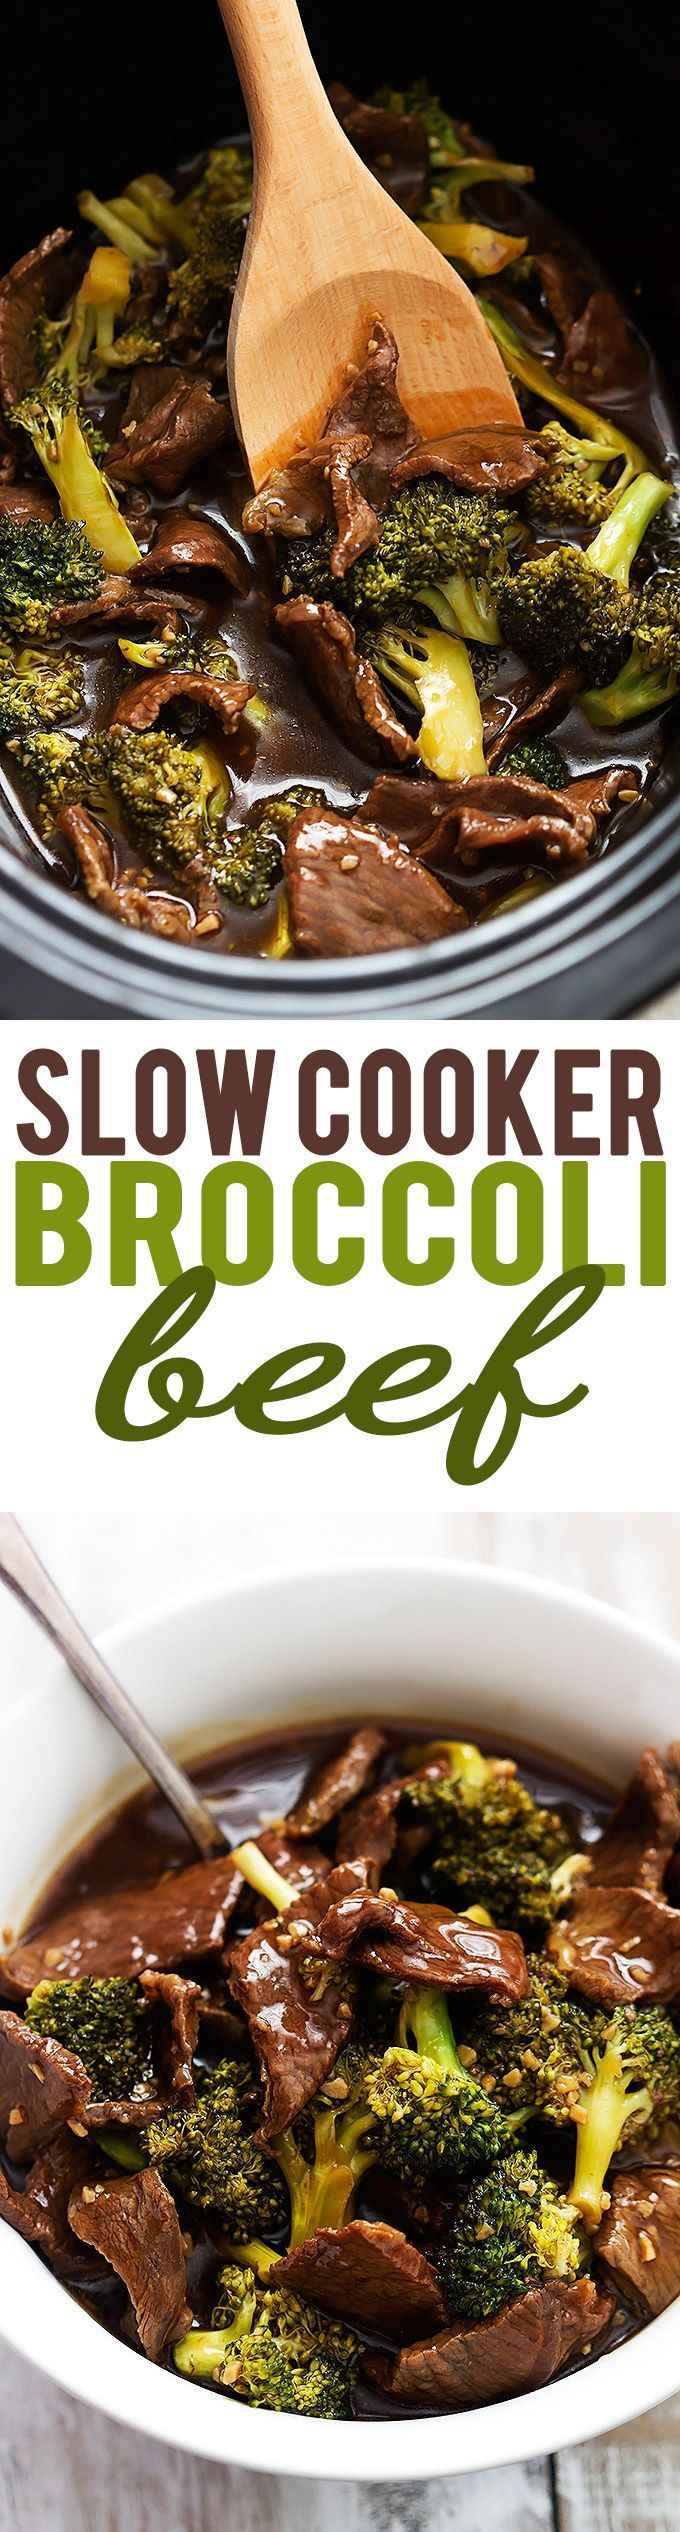 Super easy Slow Cooker Broccoli Beef! The sauce is AMAZING – so much better tasting and healthier than takeout!     Creme de la Crumb